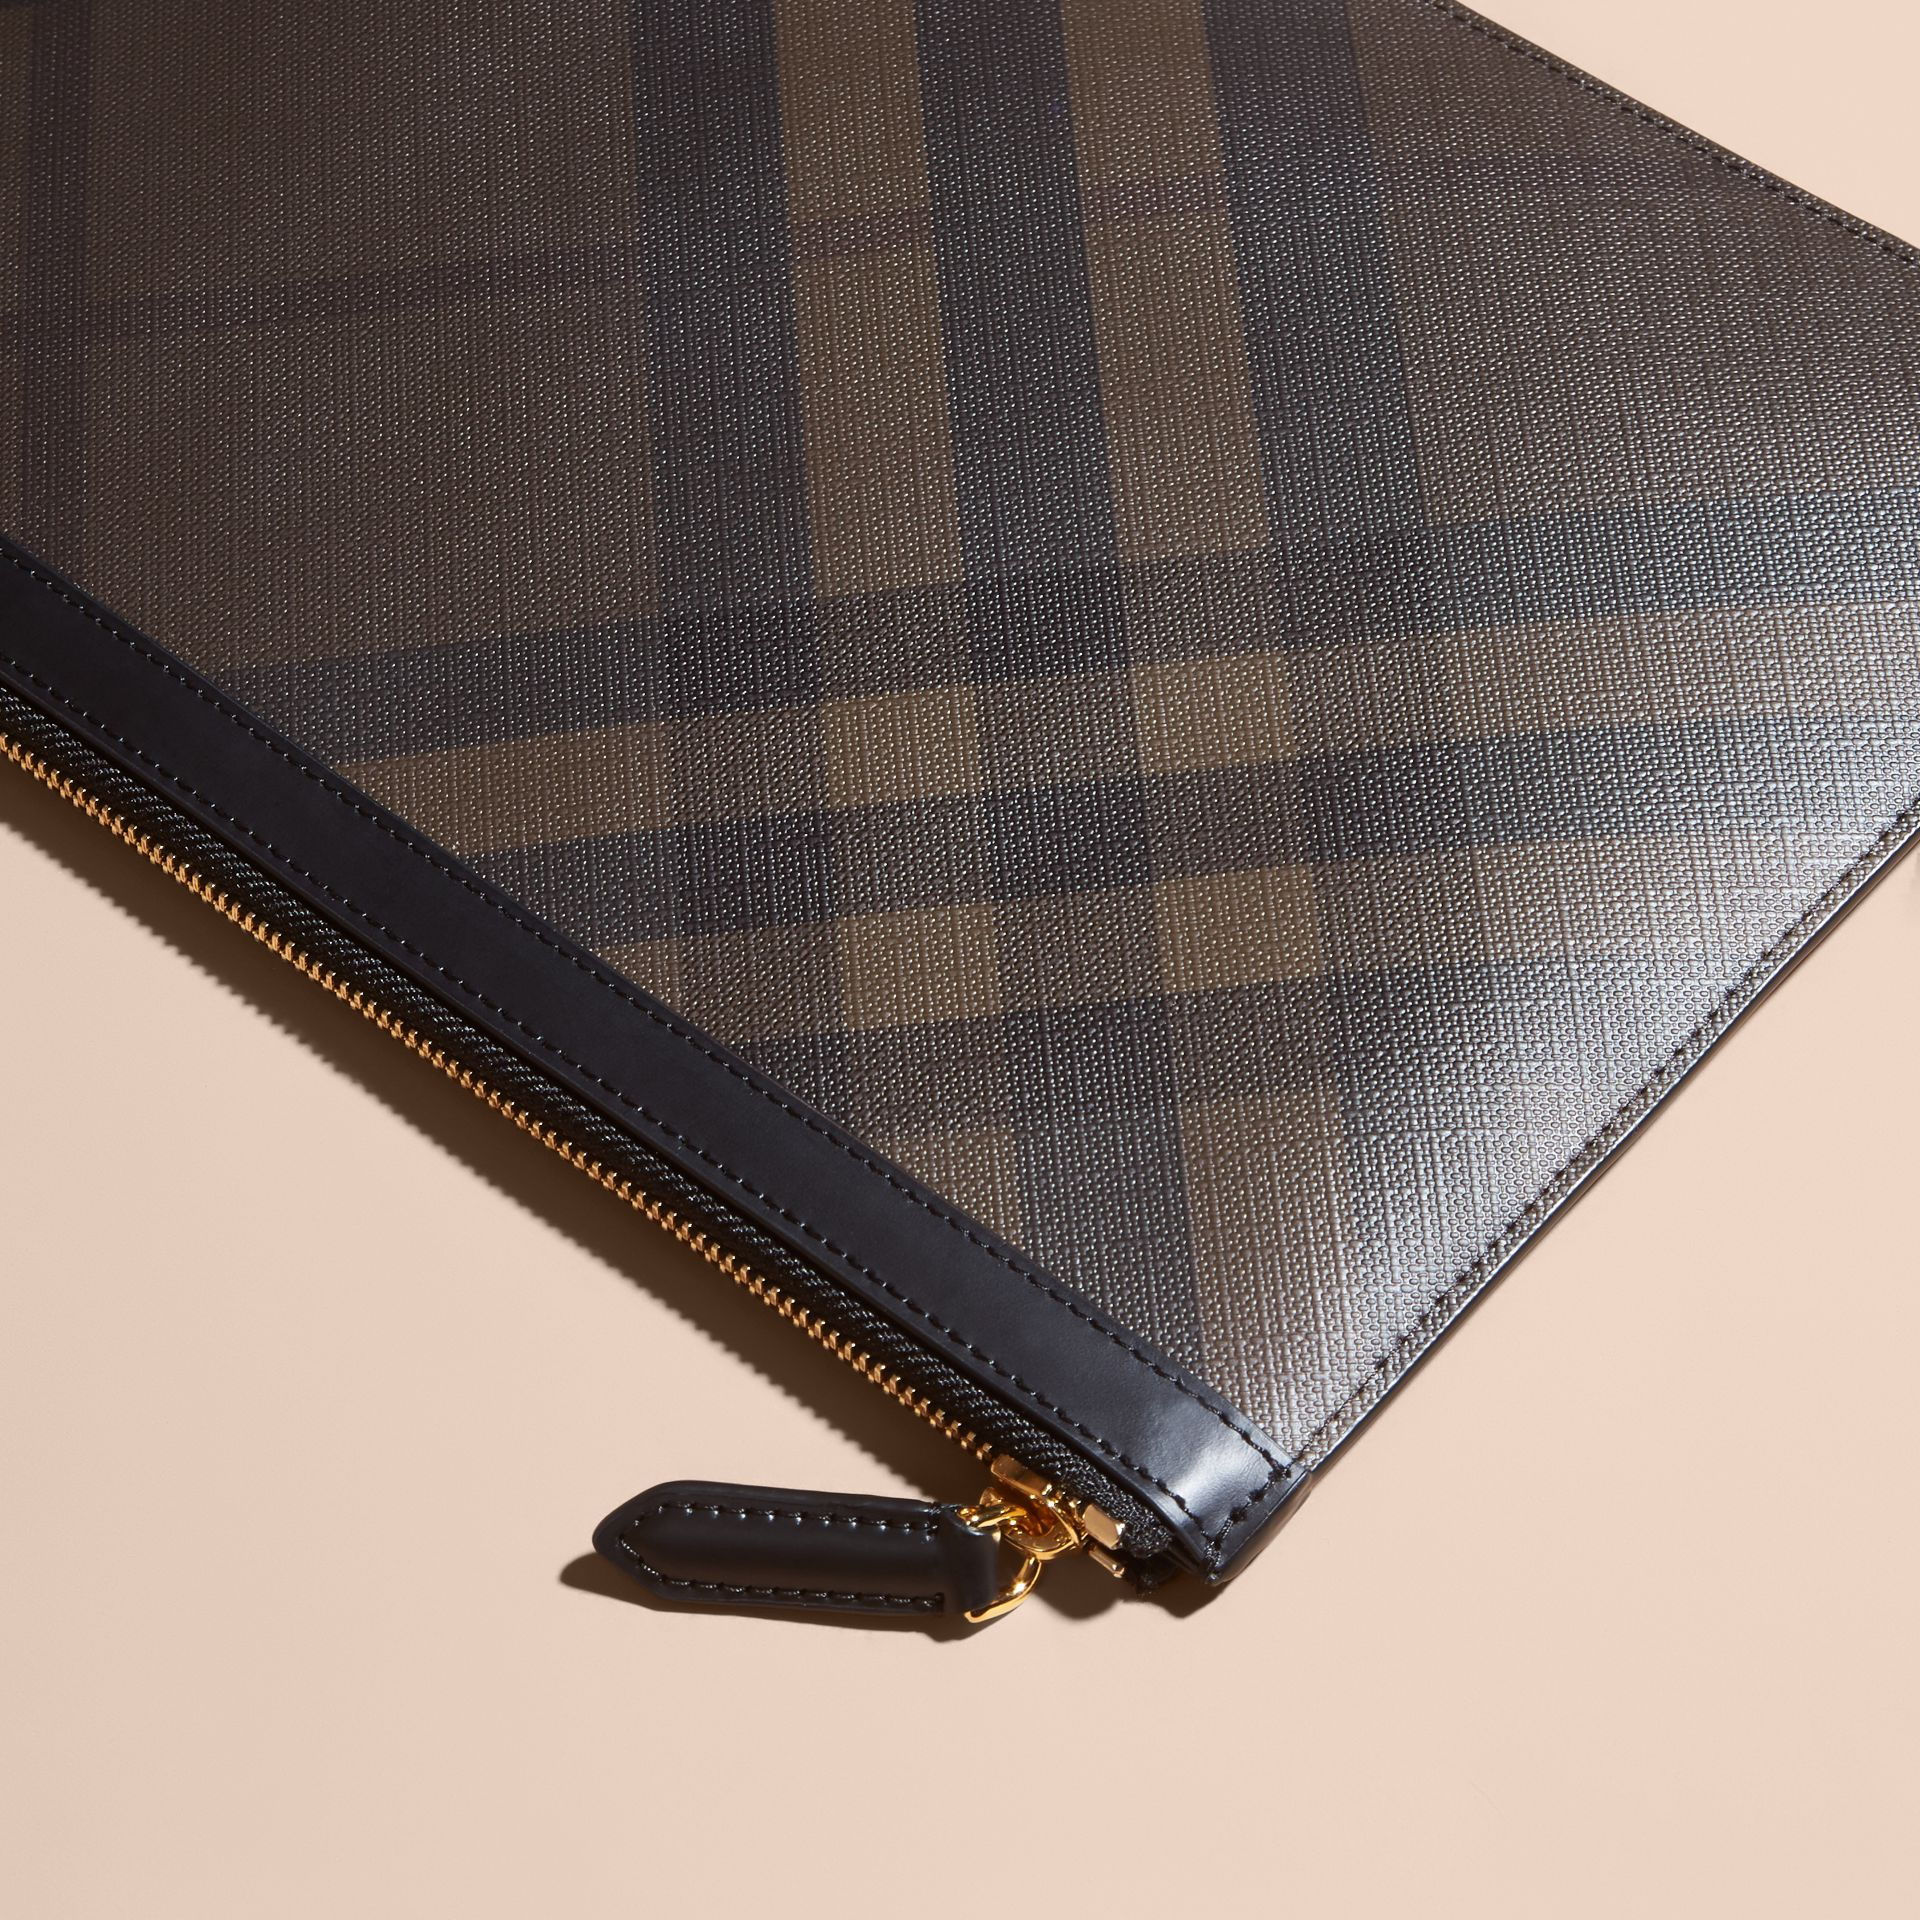 Zipped London Check Pouch in Chocolate/black - Men | Burberry - gallery image 3